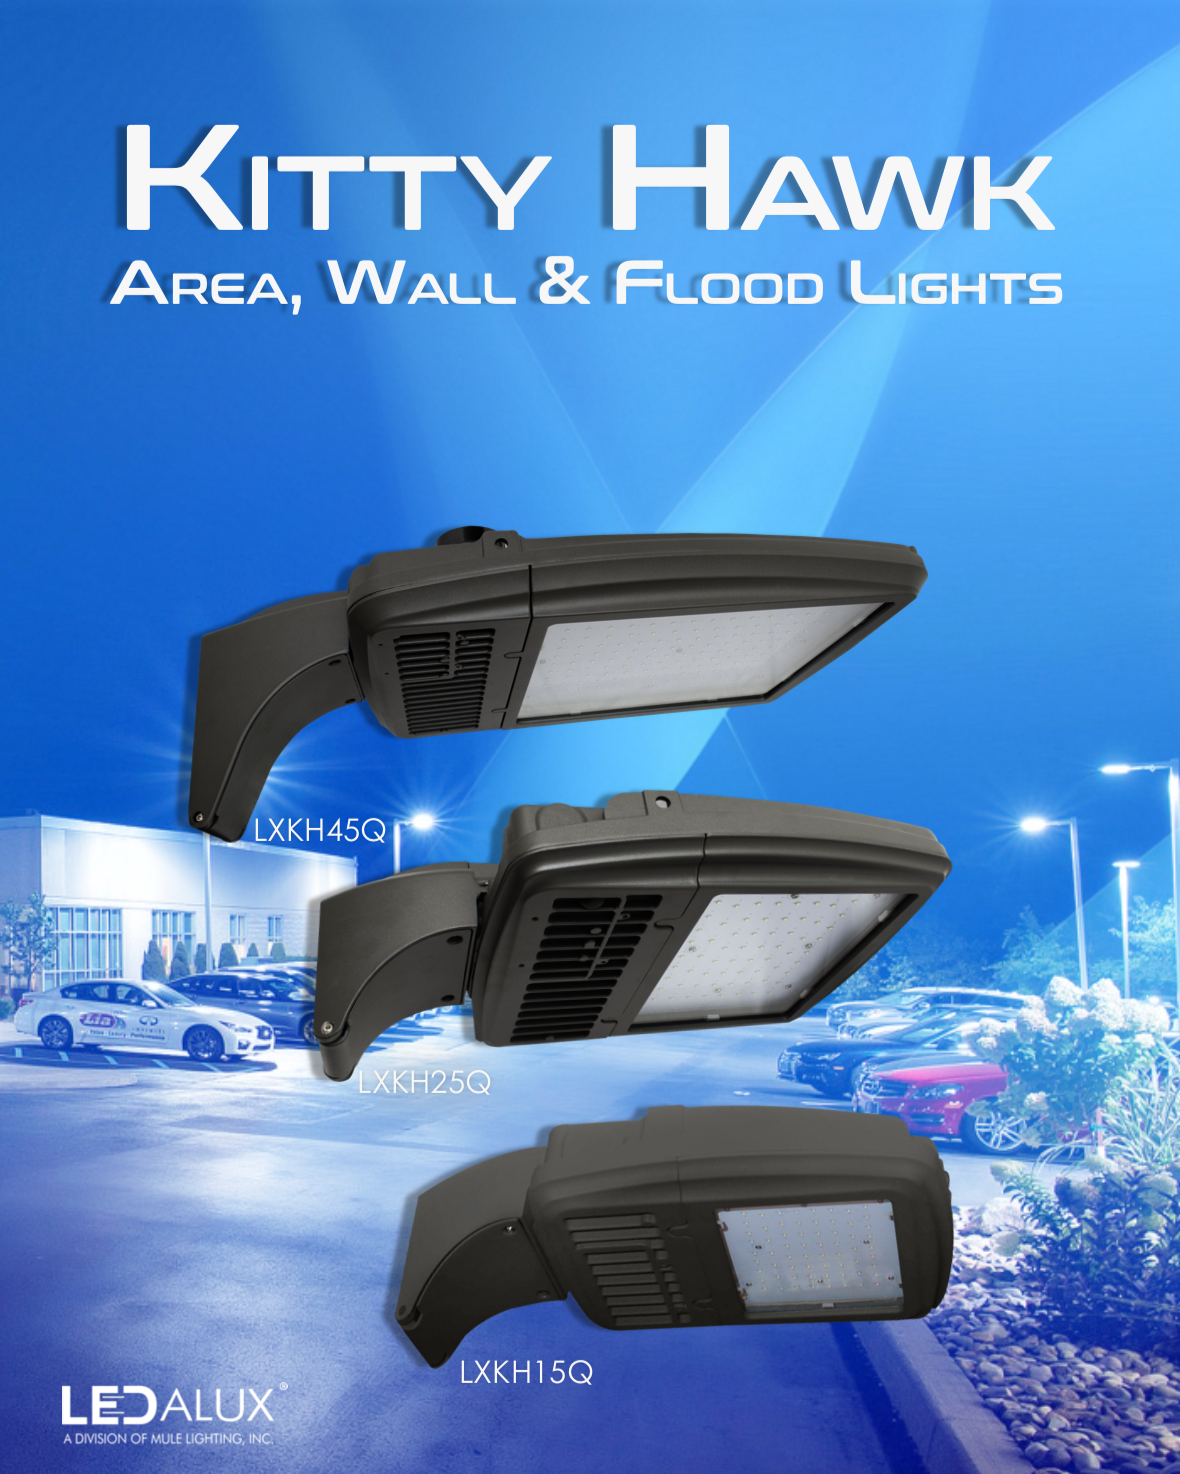 LEDalux Kitty Hawk Area, Wall & Flood Lights Literature